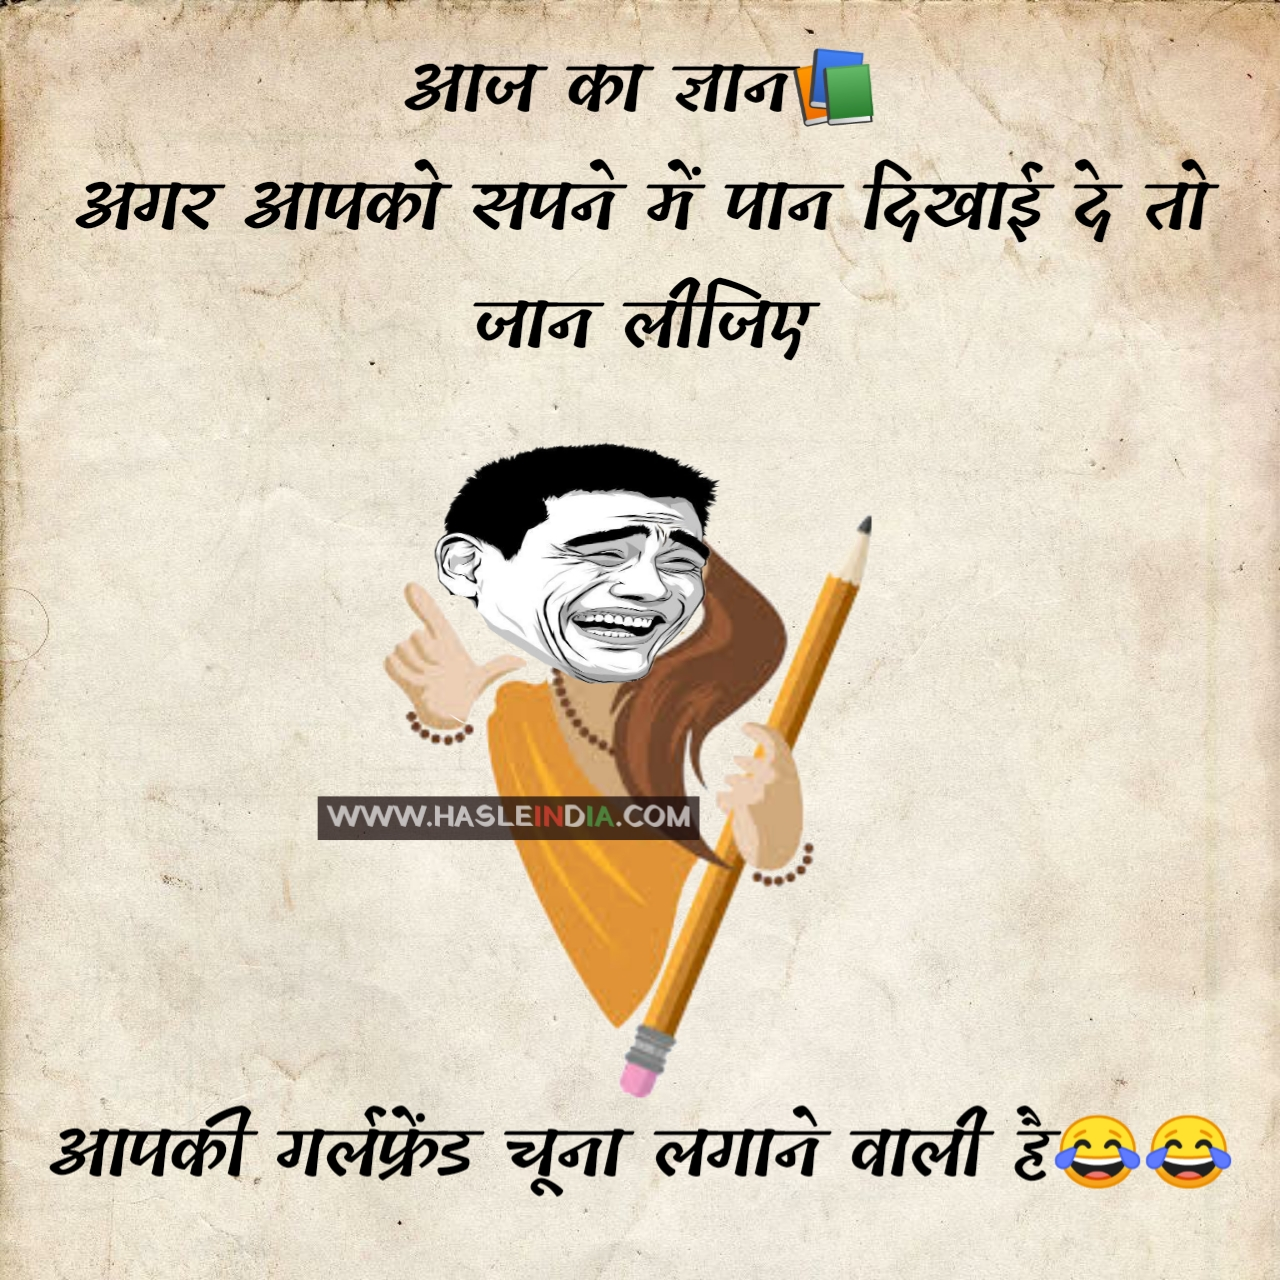 boyfriend girlfriend jokes, boyfriend girlfriend jokes in hindi, funny hindi jokes, Hindi jokes, hindi chutkule, hindi joke sms, hindi jokes pic, hindi jokes images, Hasle india,